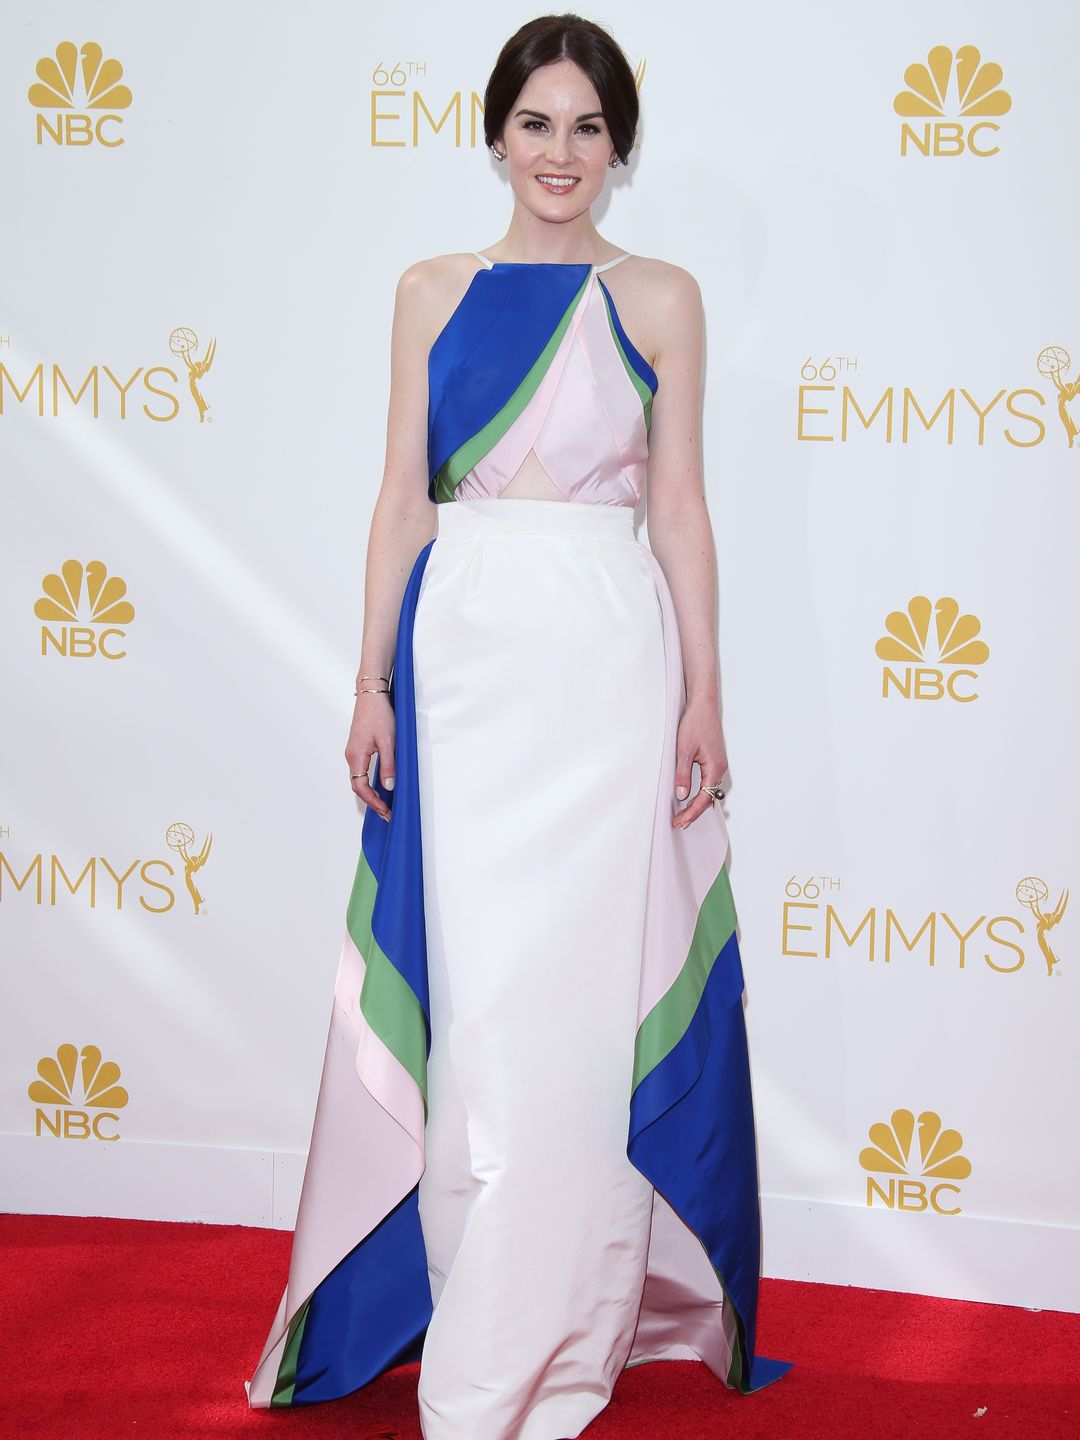 Emmys Ugly 1